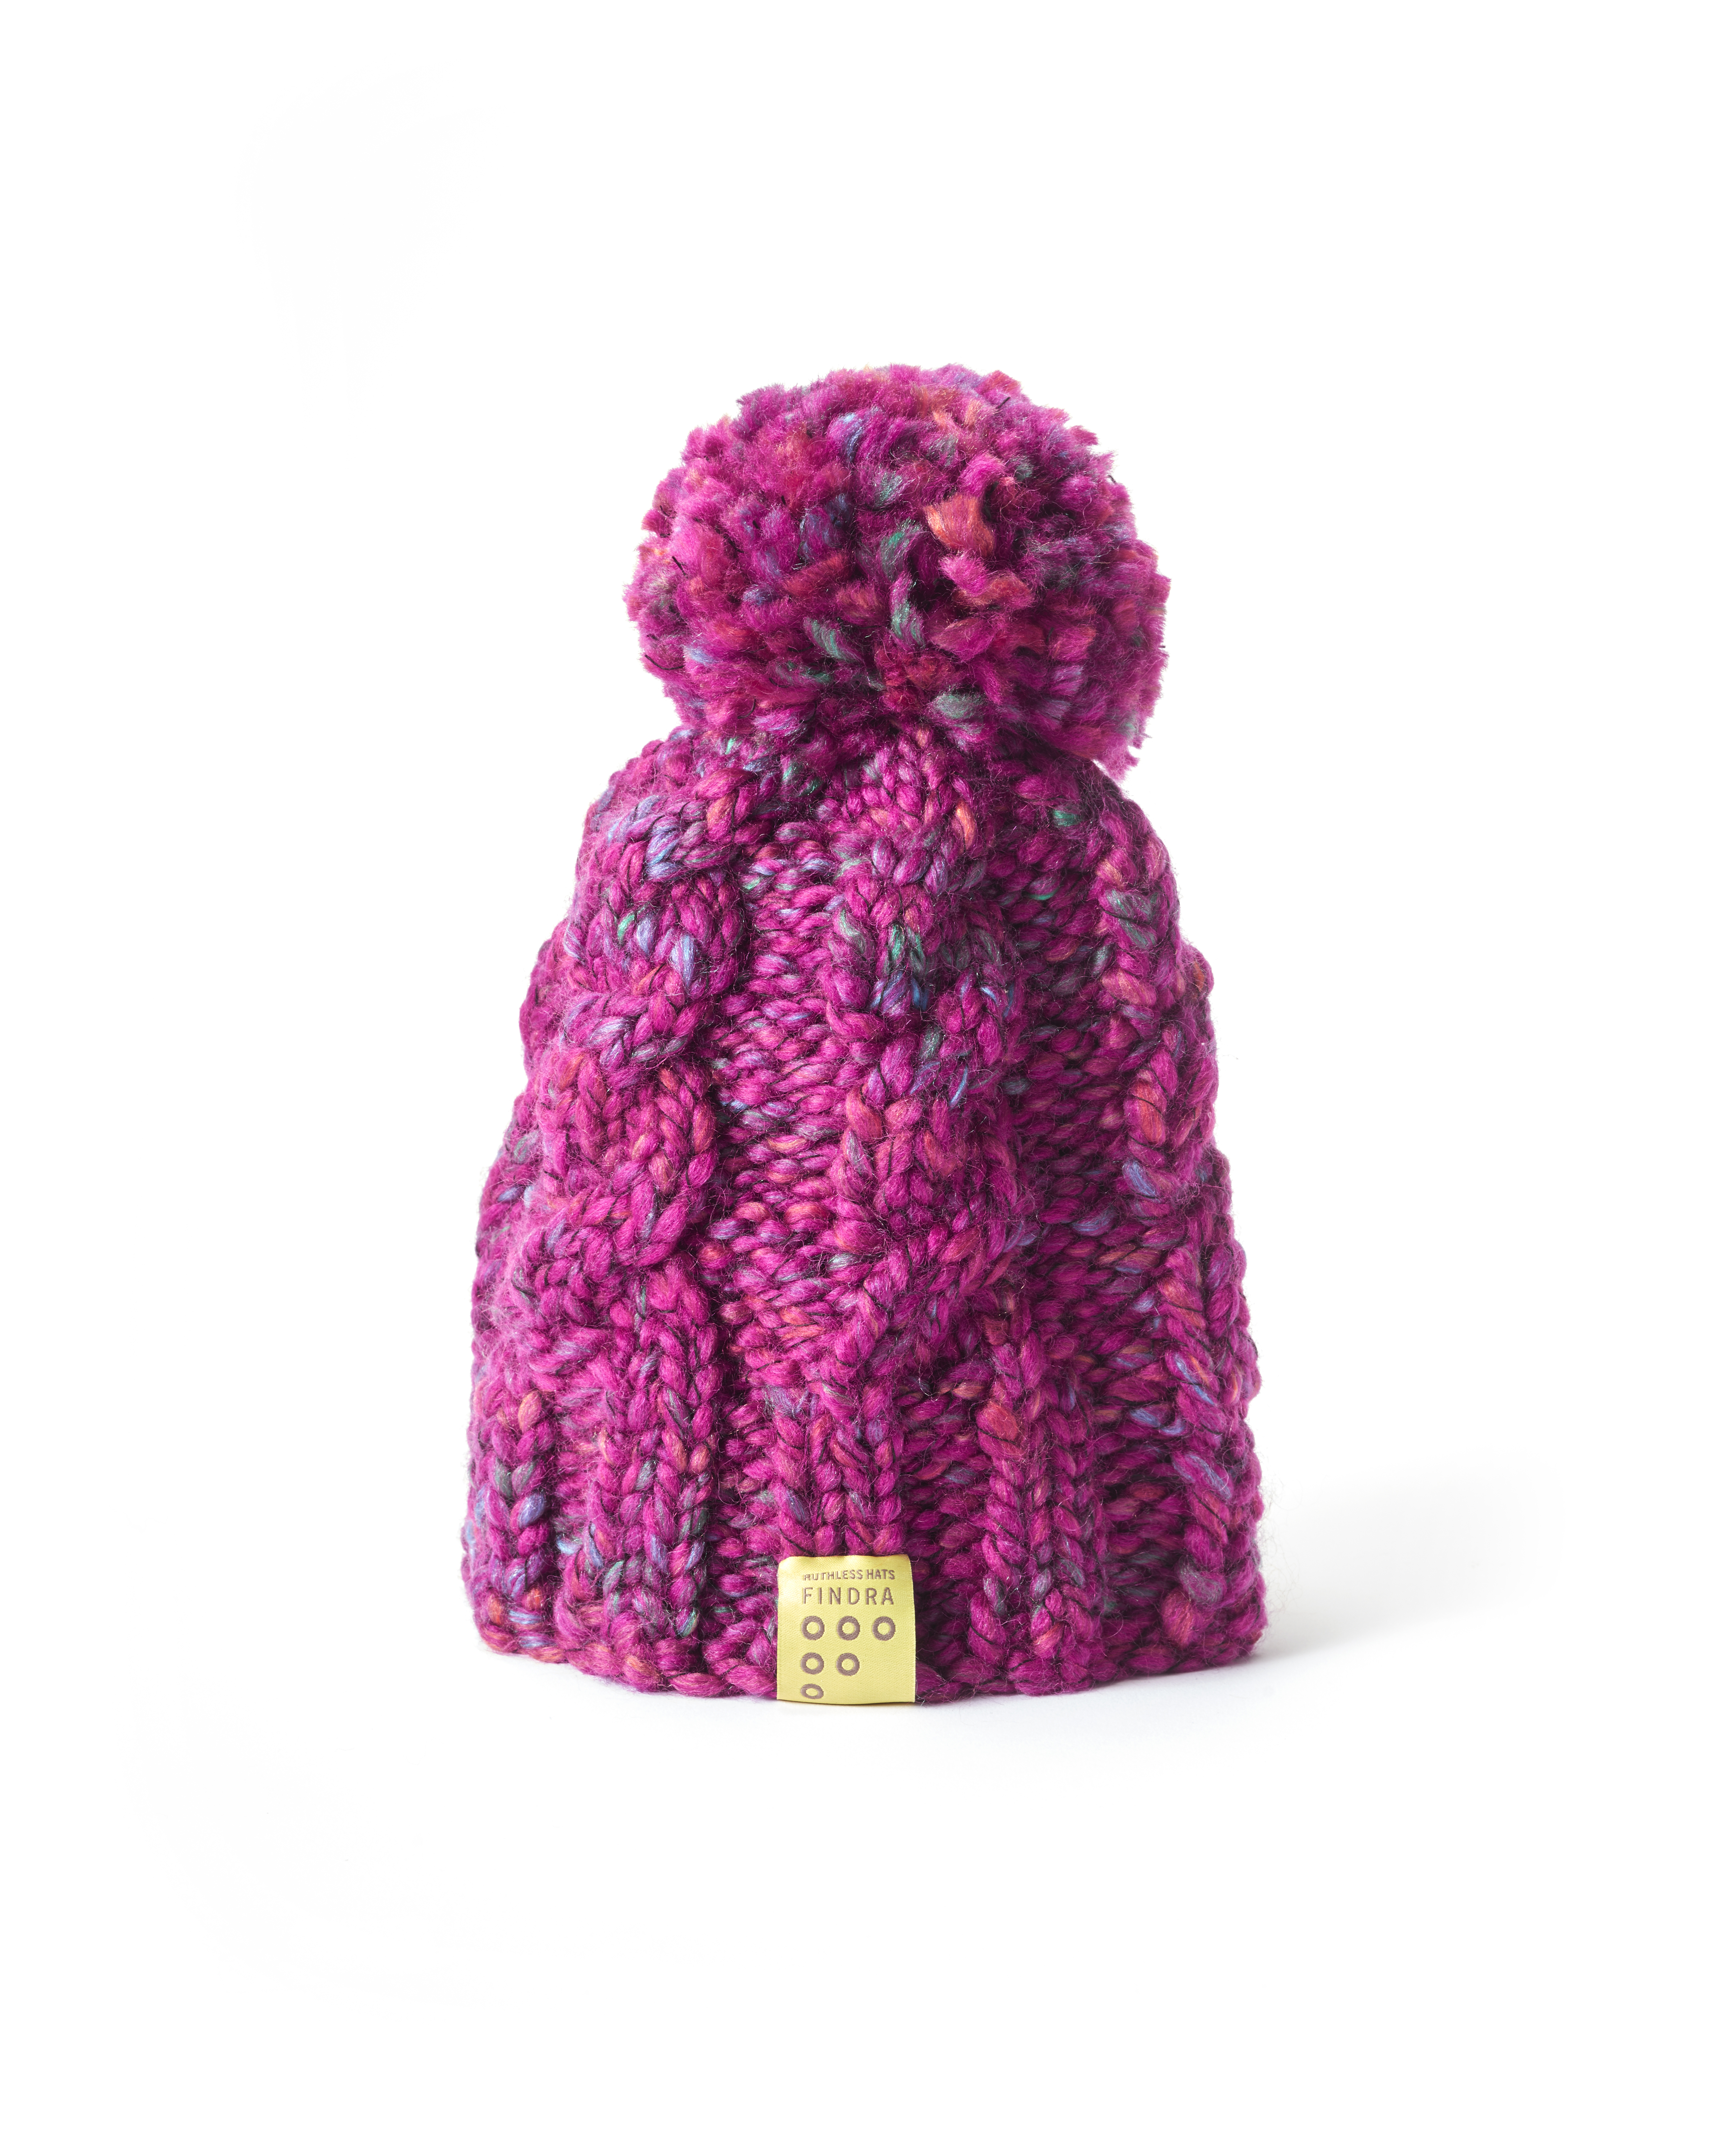 Bobble hat in Winter Rose, £35, FINDRA